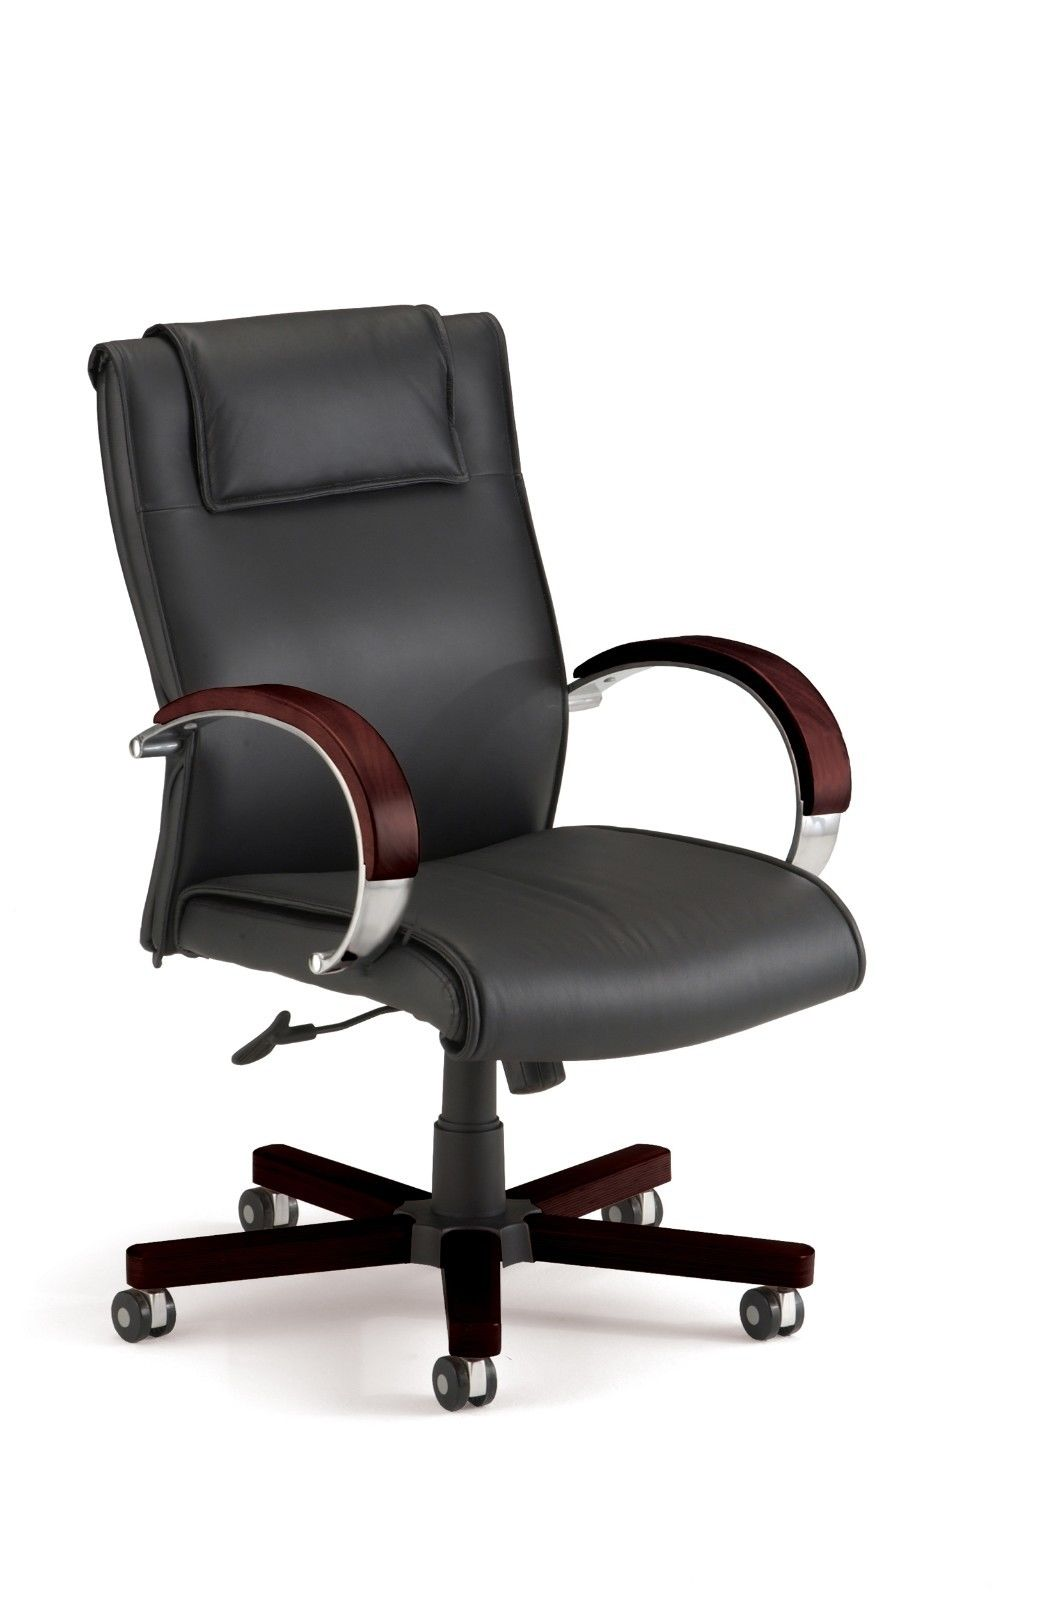 #110 - Mid Back Black Leather Executive Office Chair with Mahogany Accent